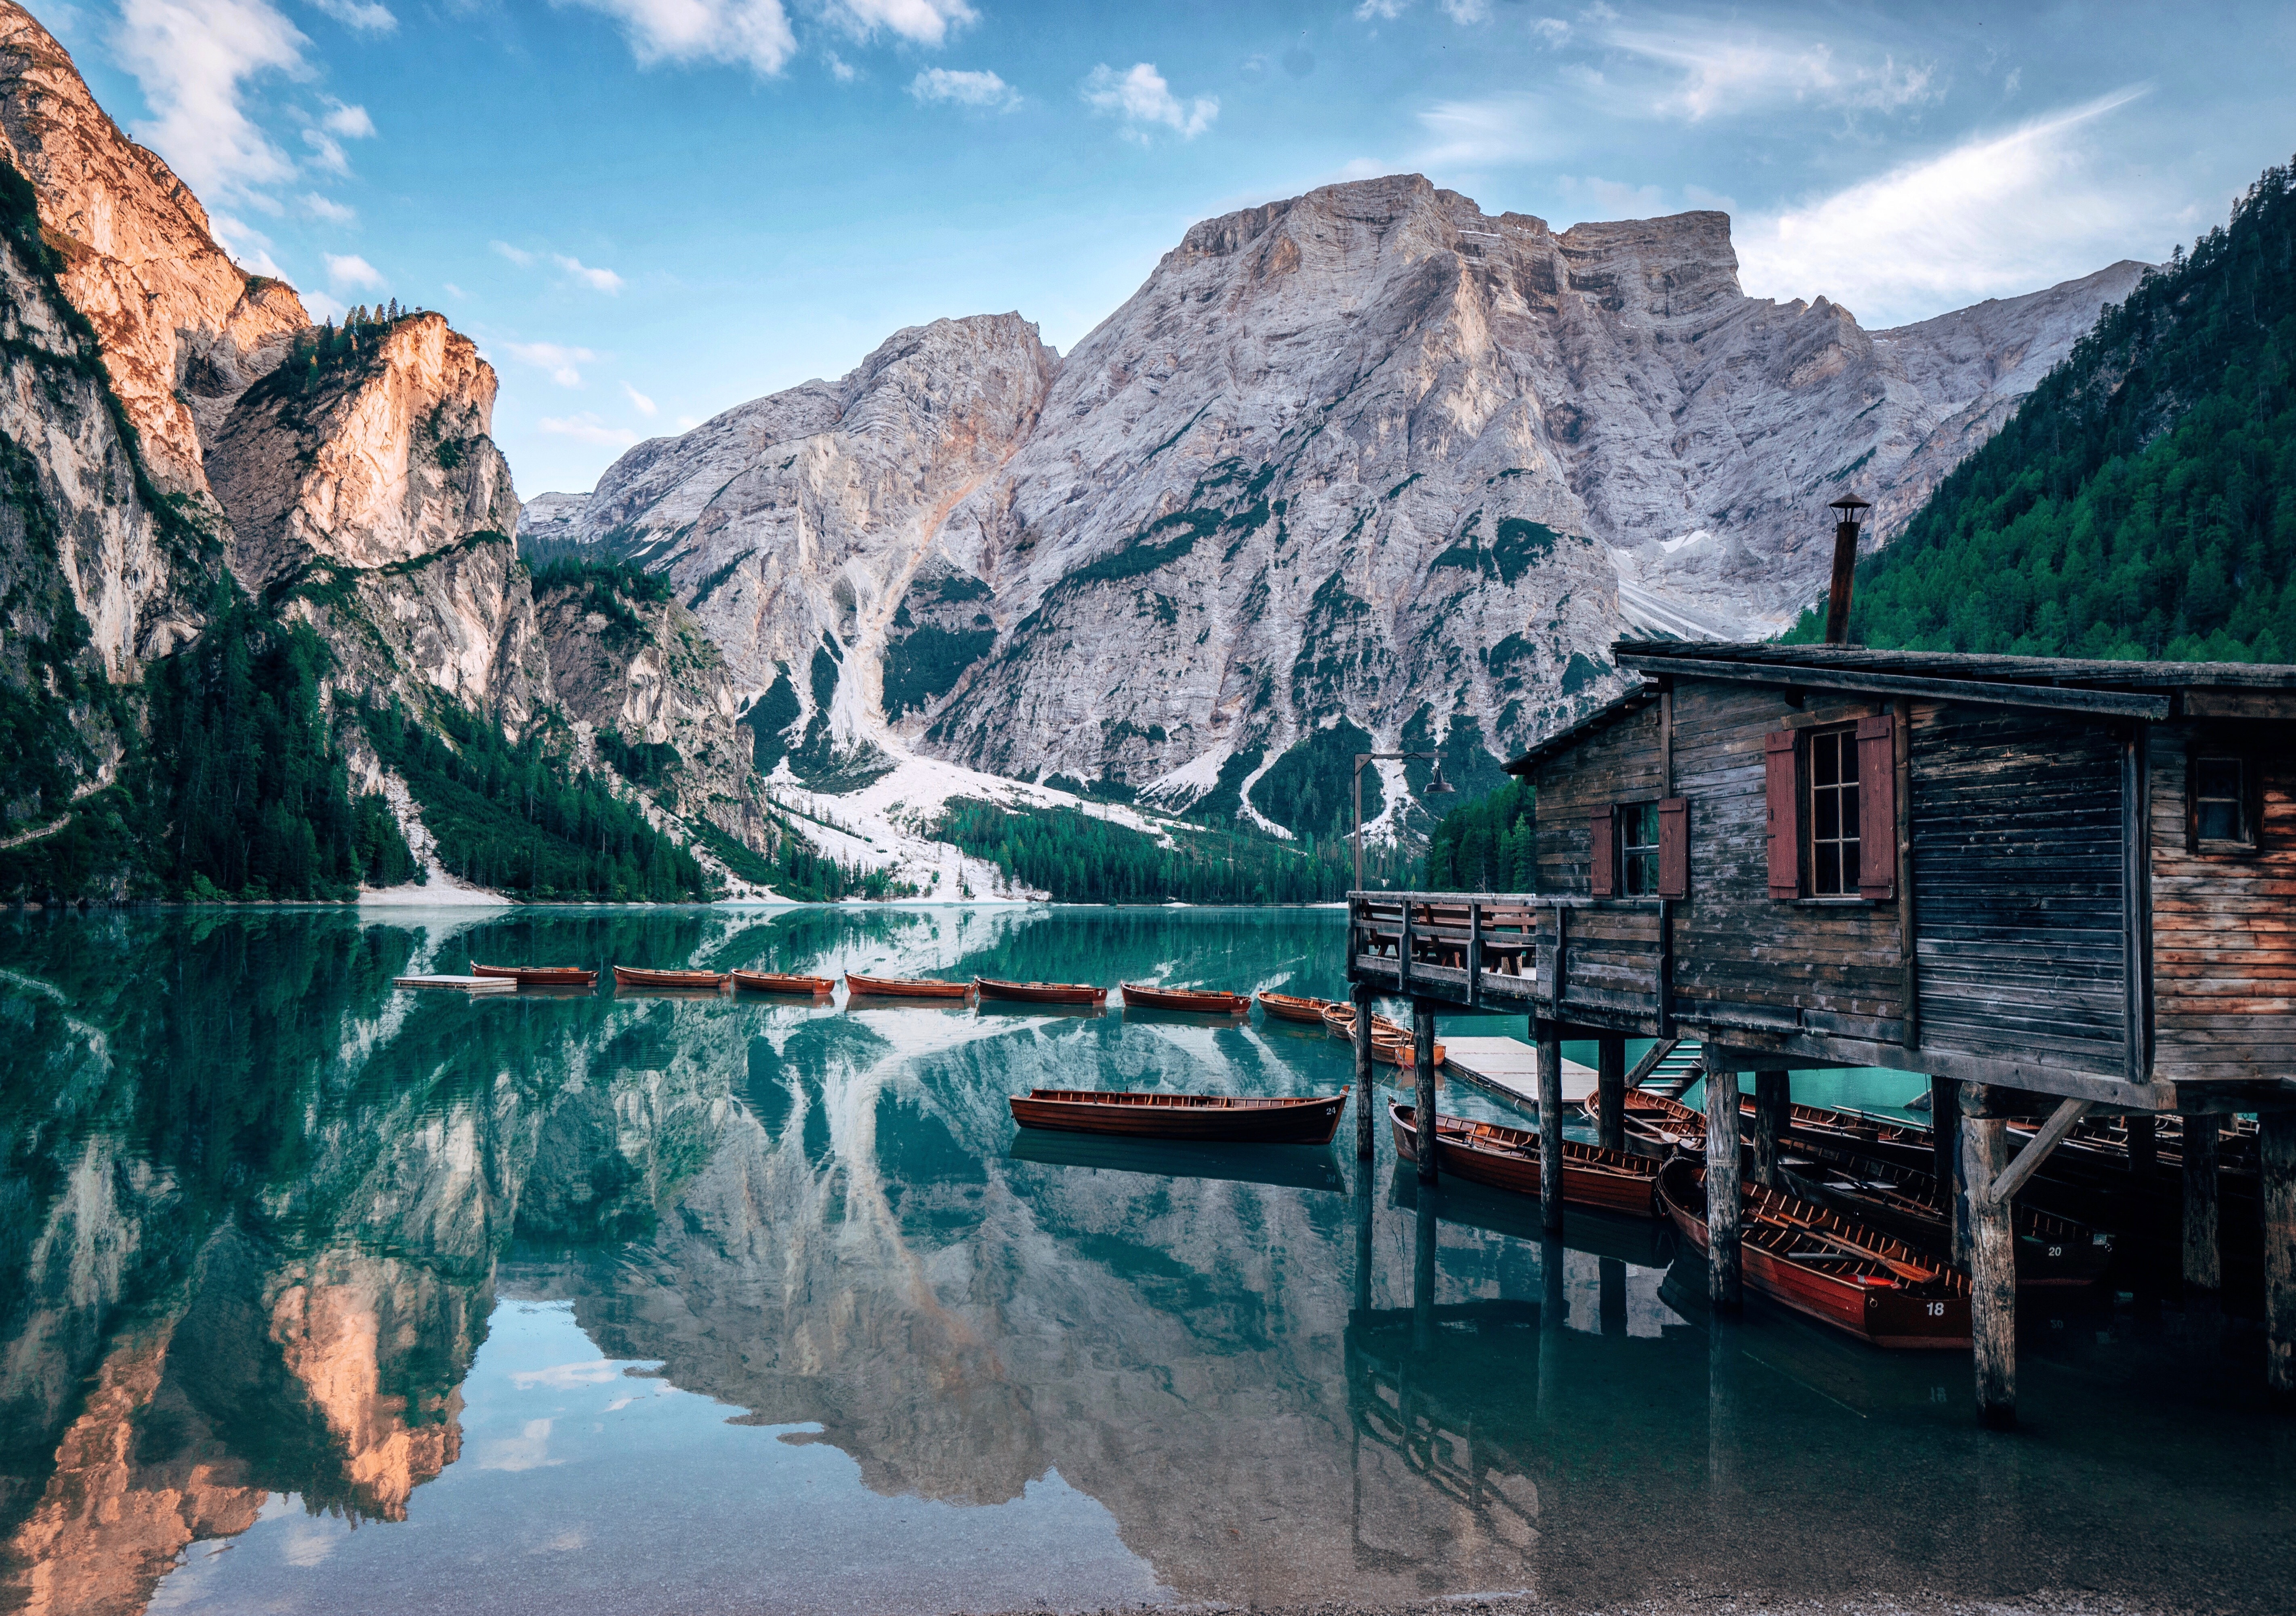 137115 download wallpaper Landscape, Nature, Mountains, Boats, Lake, Small House, Lodge, Journey screensavers and pictures for free